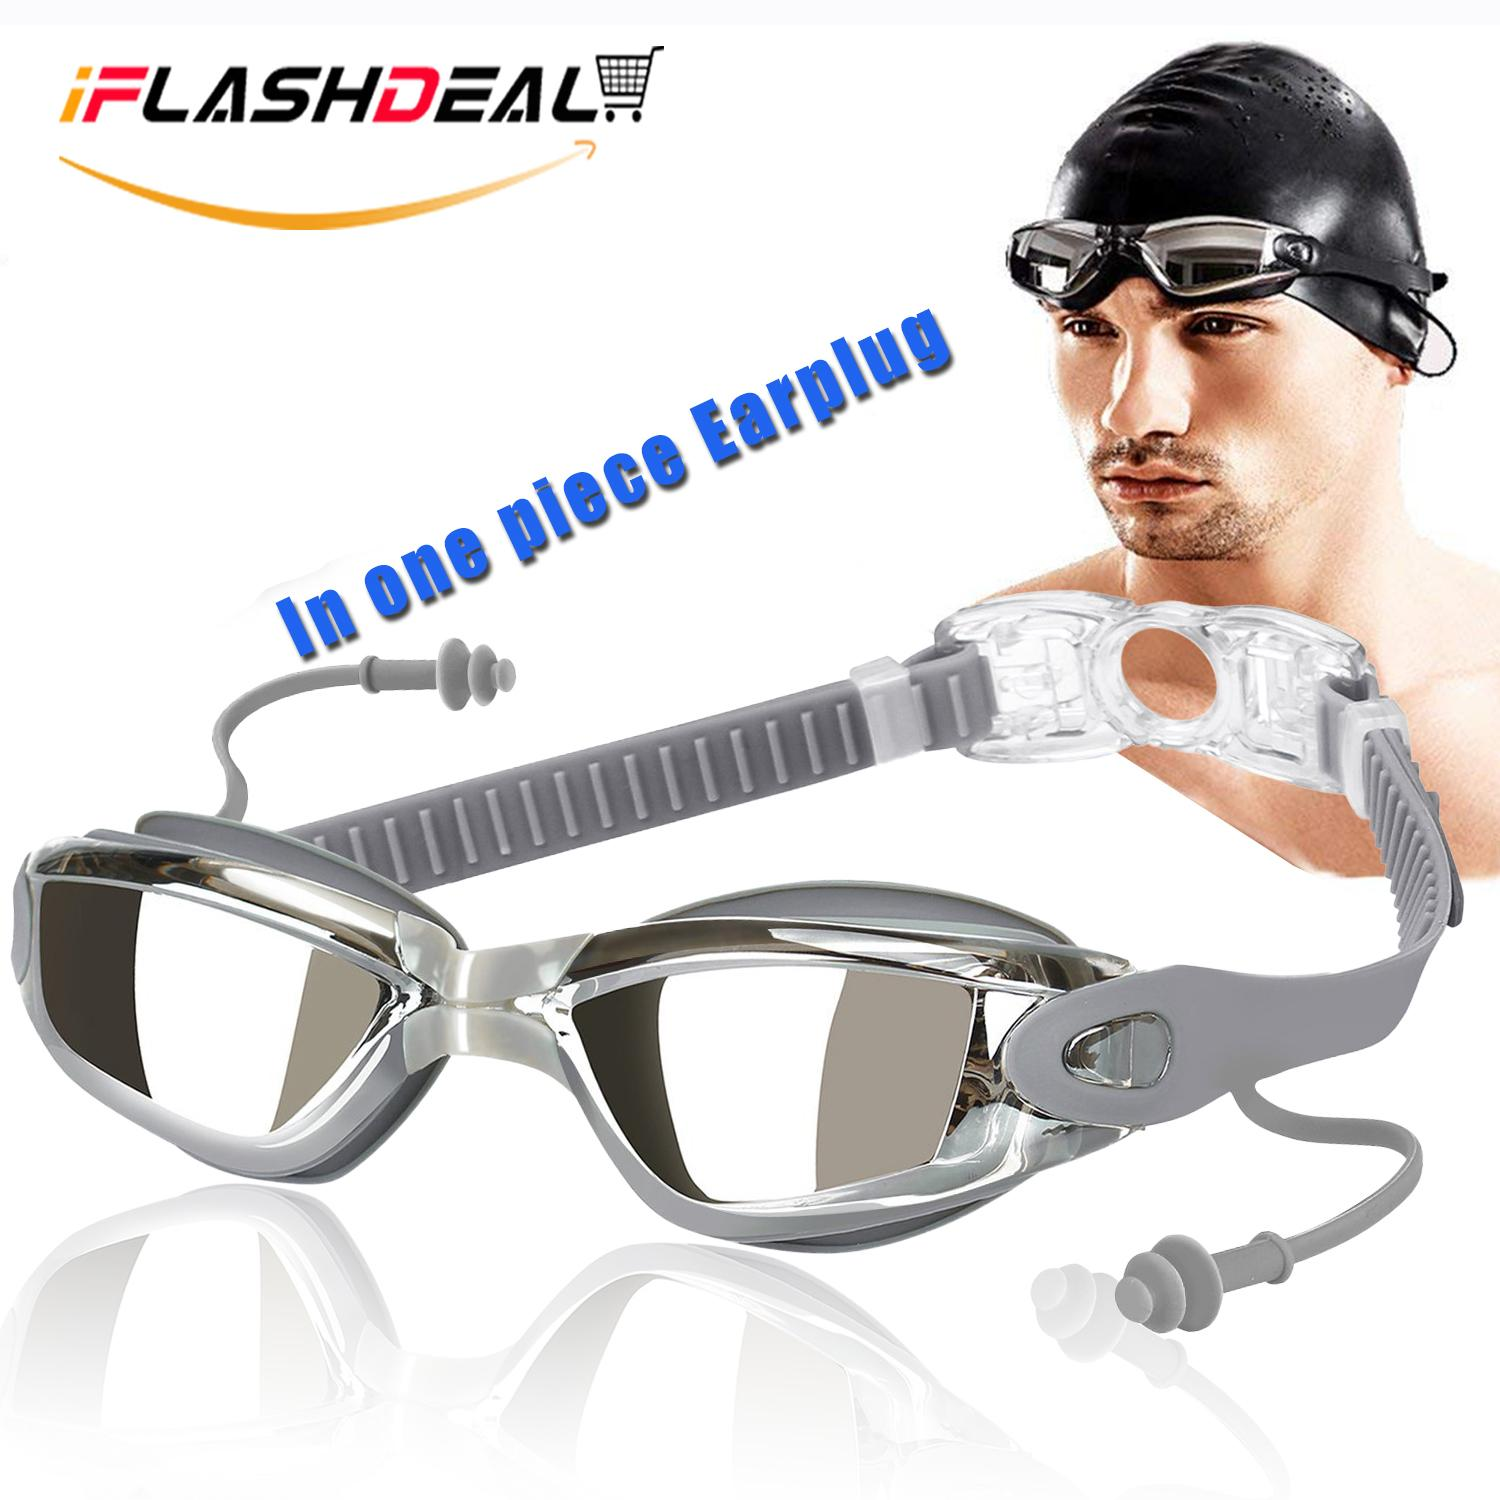 3d342394bb85 iFlashDeal Swimming Goggles Swim Goggles for Adult Men Women Youth Kids  Child Mirrored   Clear Anti-Fog Waterproof UV 400 Protection Lenses